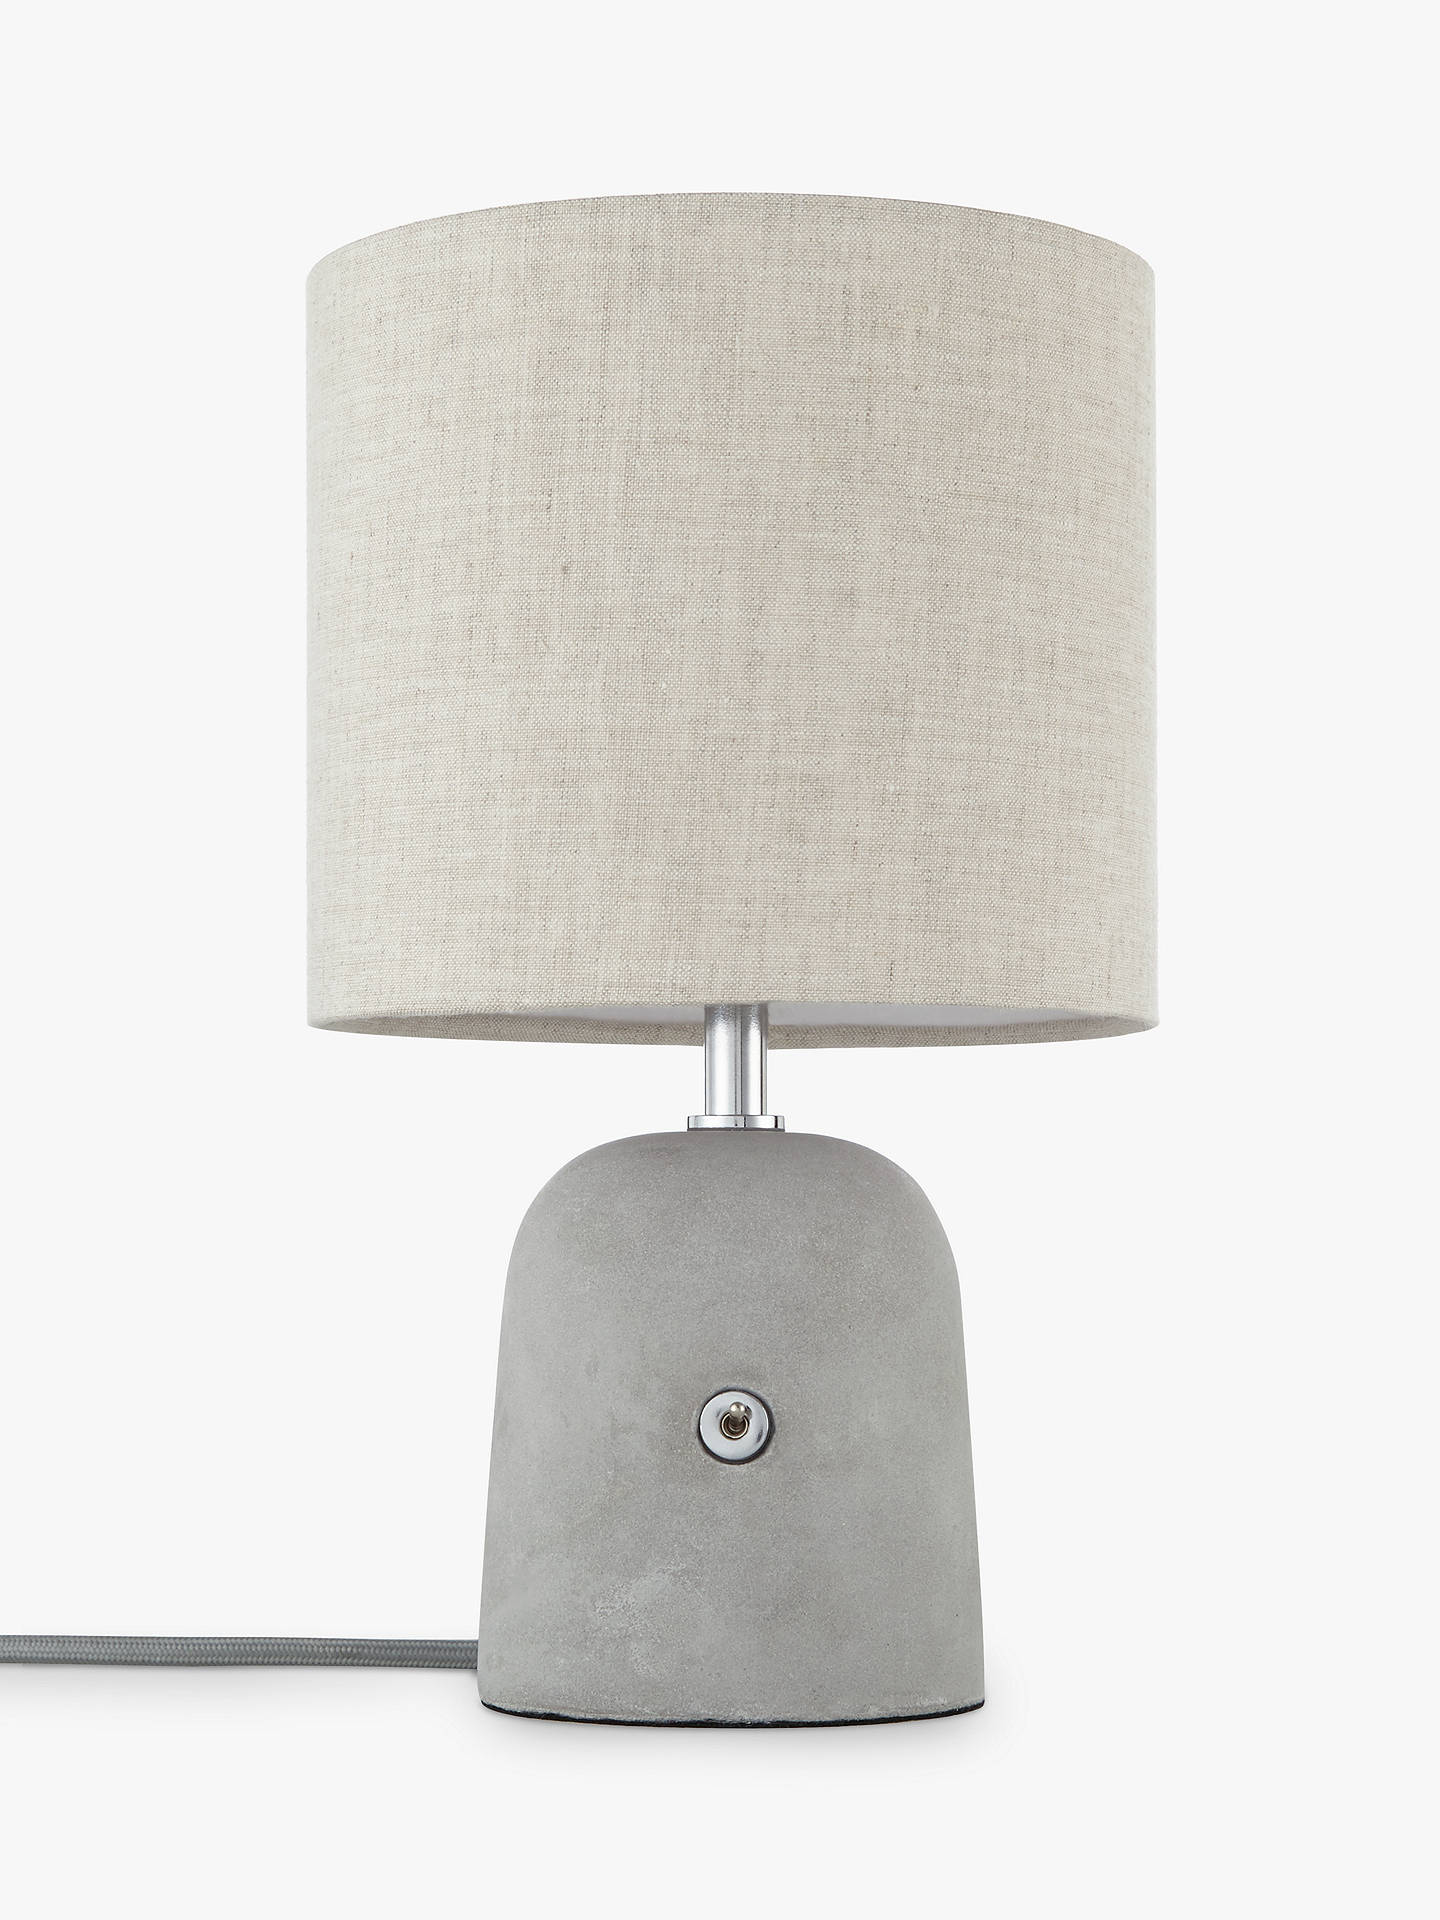 BuyJohn Lewis & Partners Meryl Concrete Switch Table Lamp, Grey Online at johnlewis.com